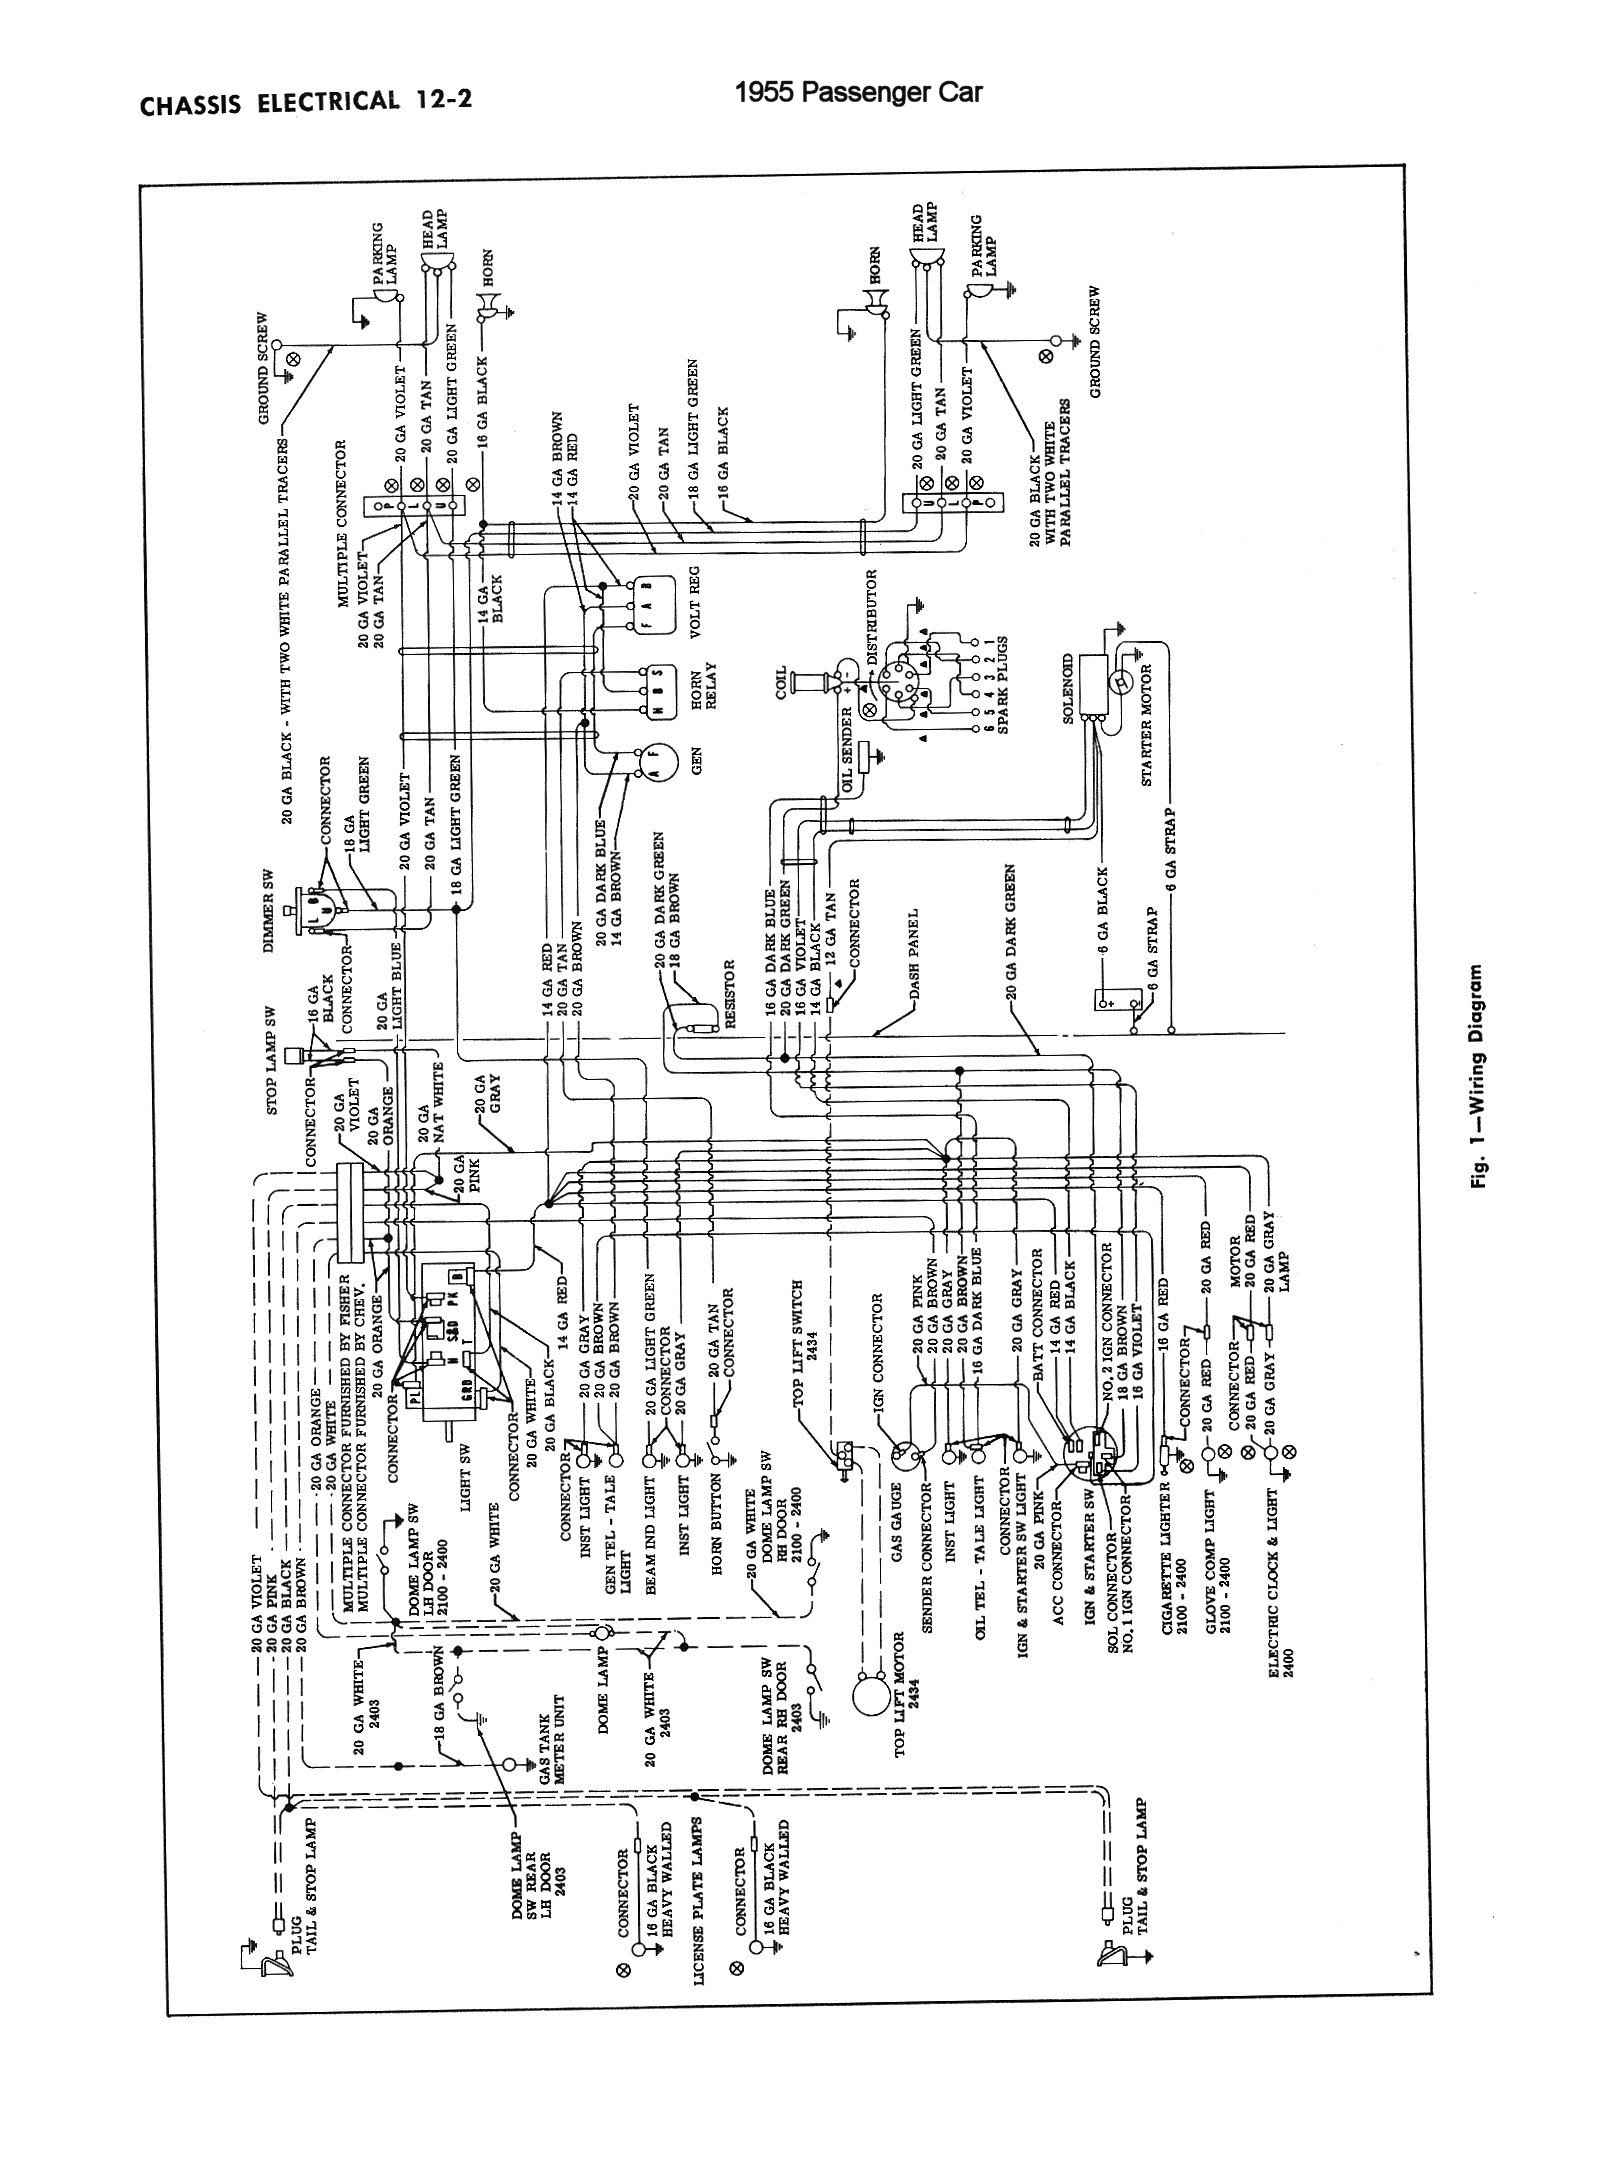 55 Chevrolet Wiring Diagram : 27 Wiring Diagram Images